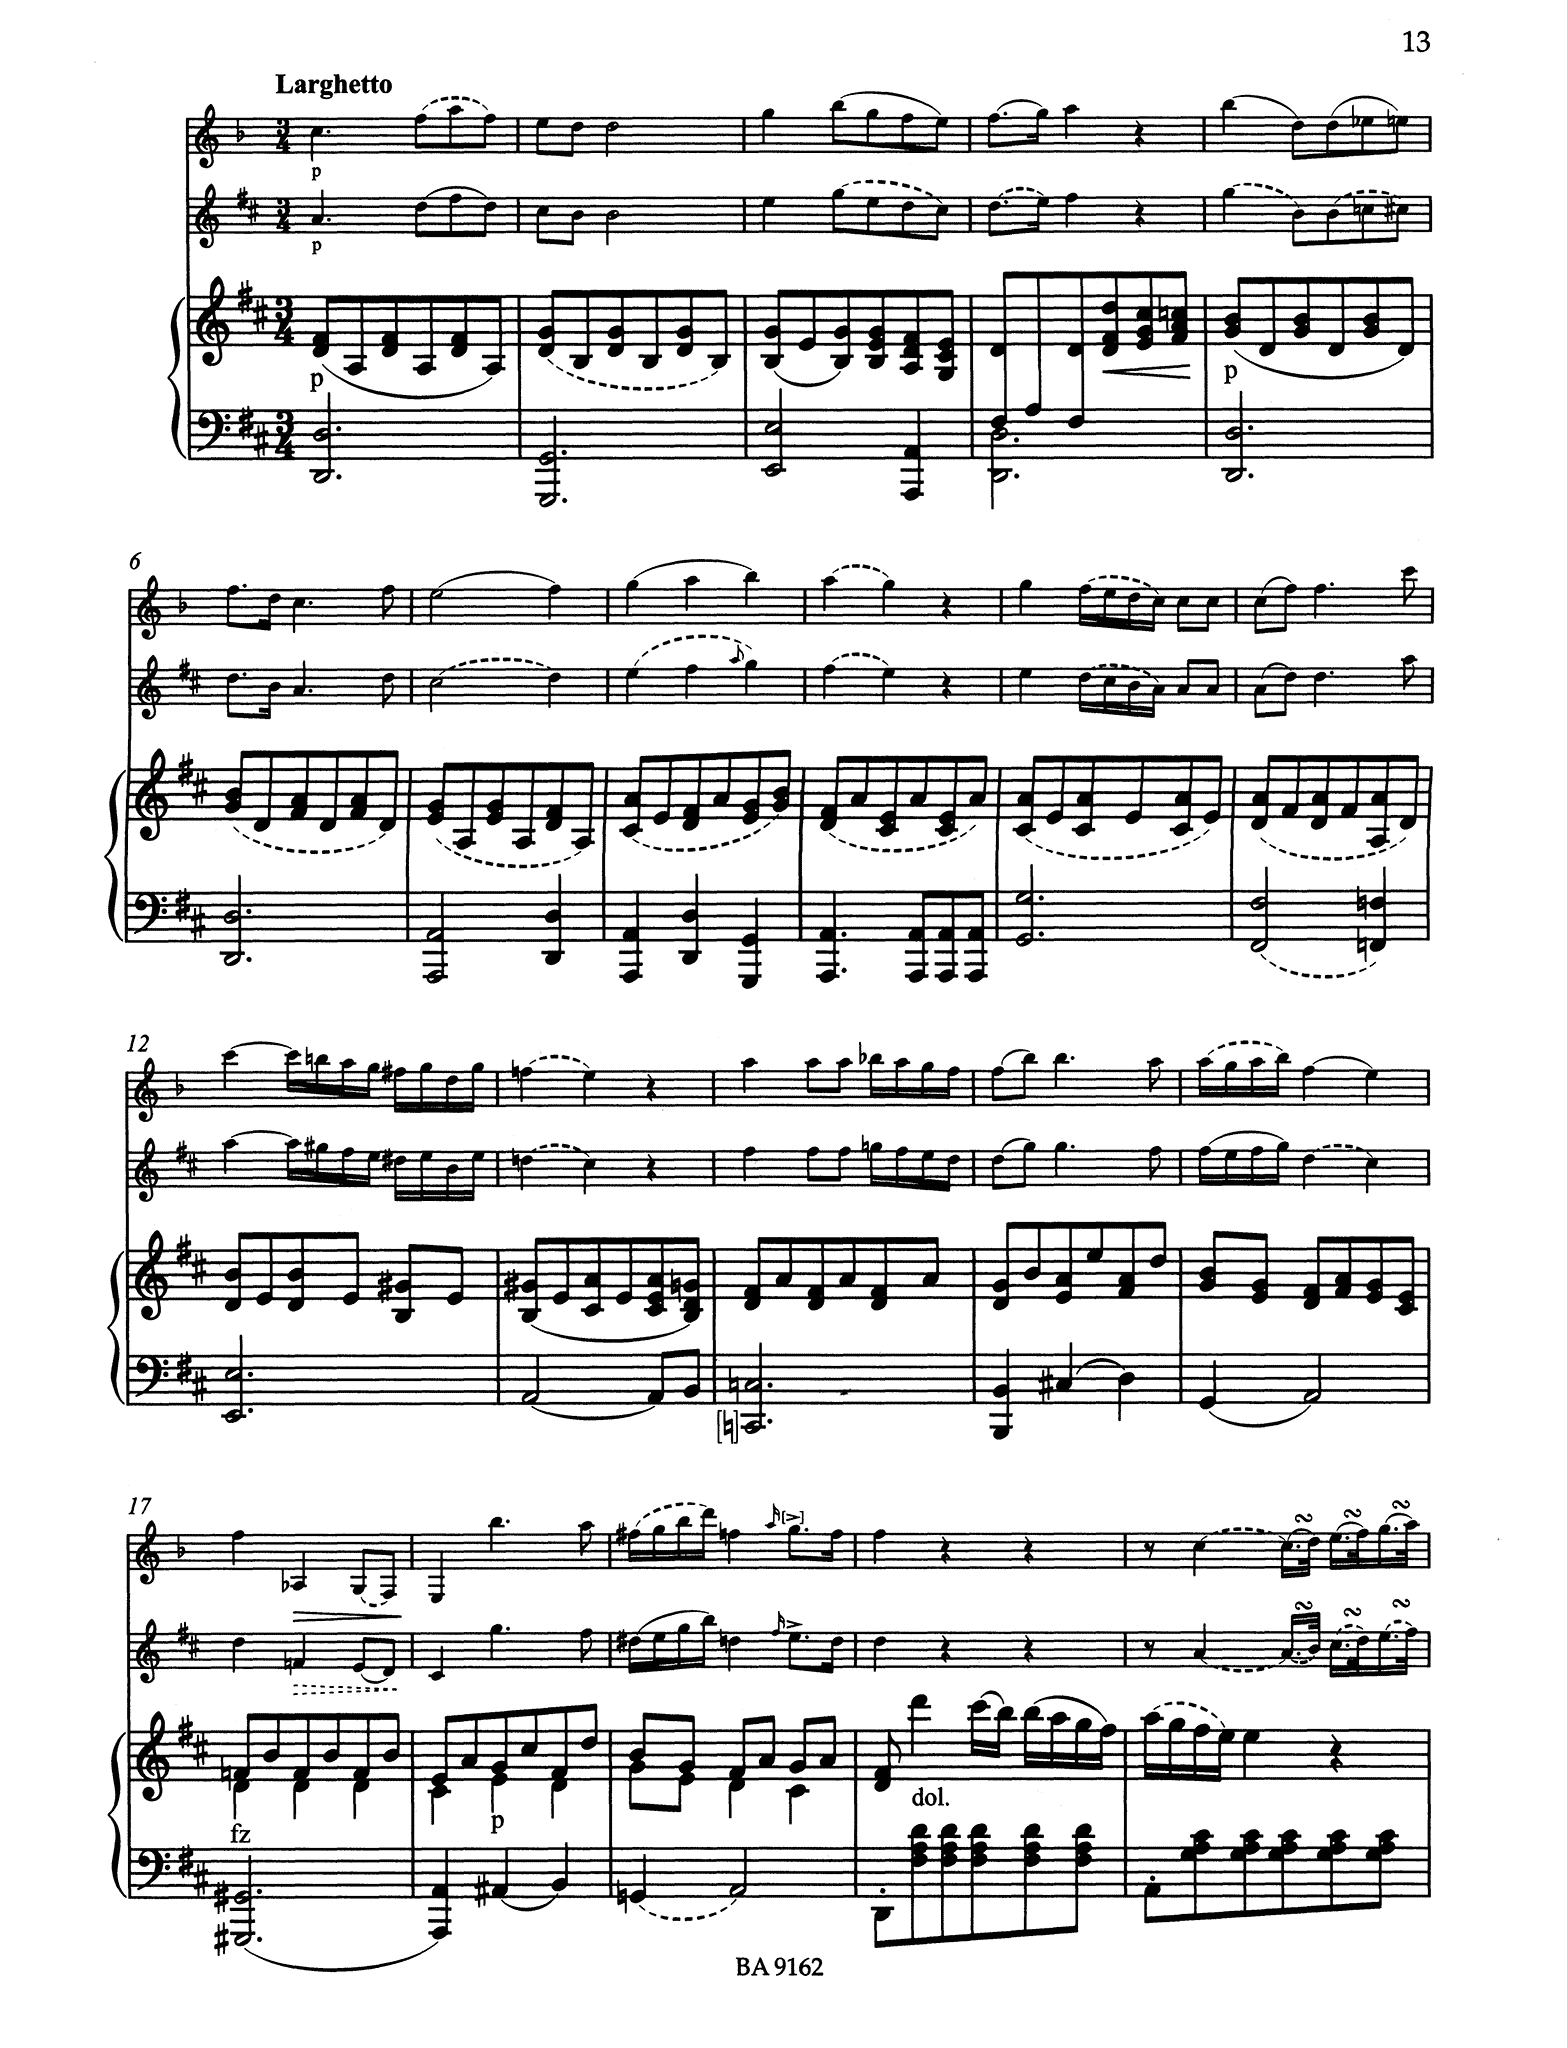 Grande Sonate after the Clarinet Quintet, K. 581 - Movement 2